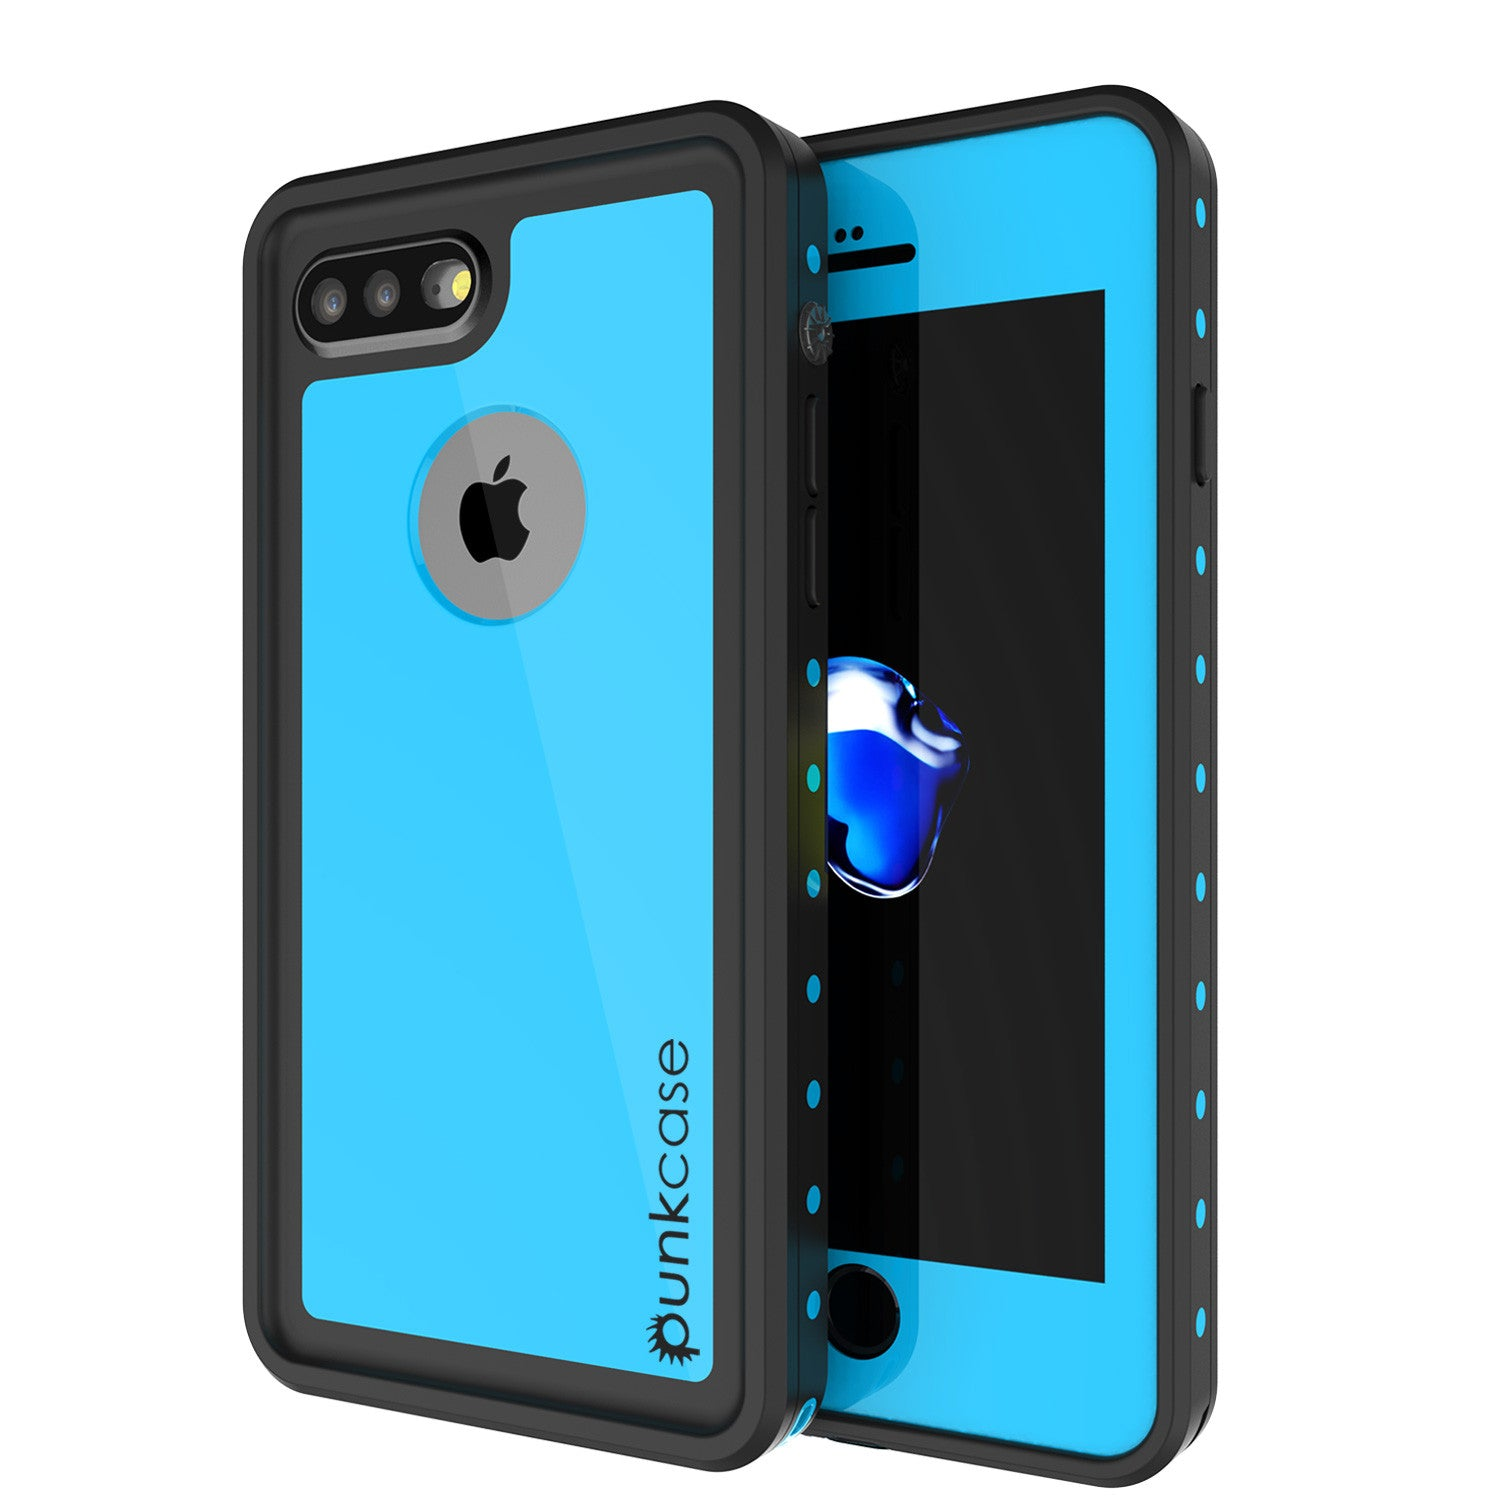 separation shoes ebc23 b6bef iPhone 7+ Plus Waterproof IP68 Case, Punkcase [Light Blue] [StudStar  Series] [Slim Fit] [Dirtproof]